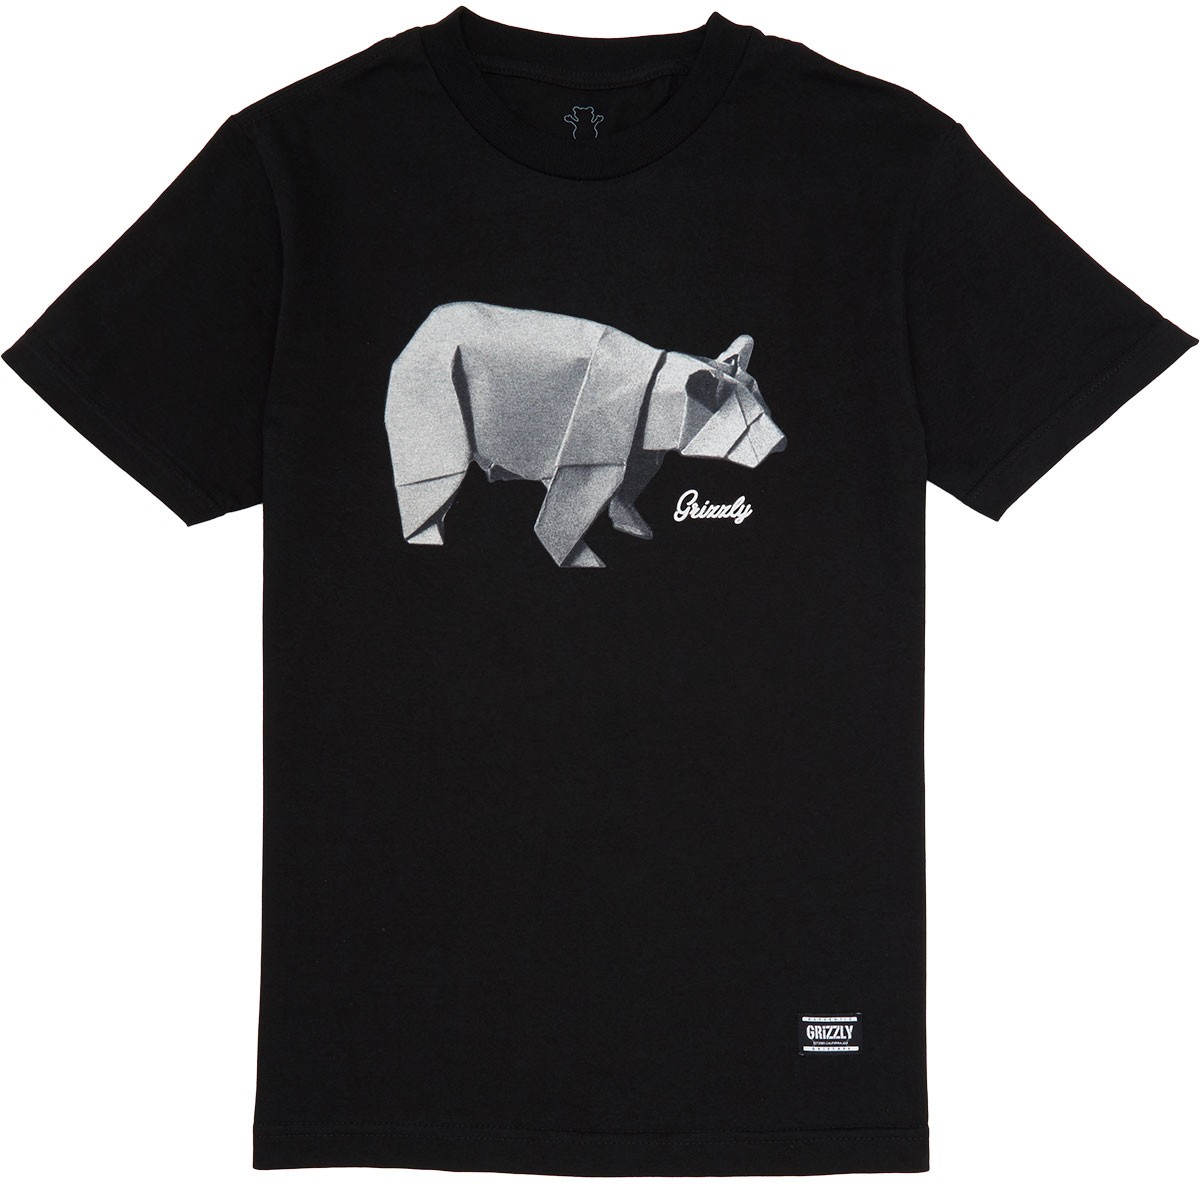 Origami t shirt black grizzly origami t shirt black jeuxipadfo Gallery